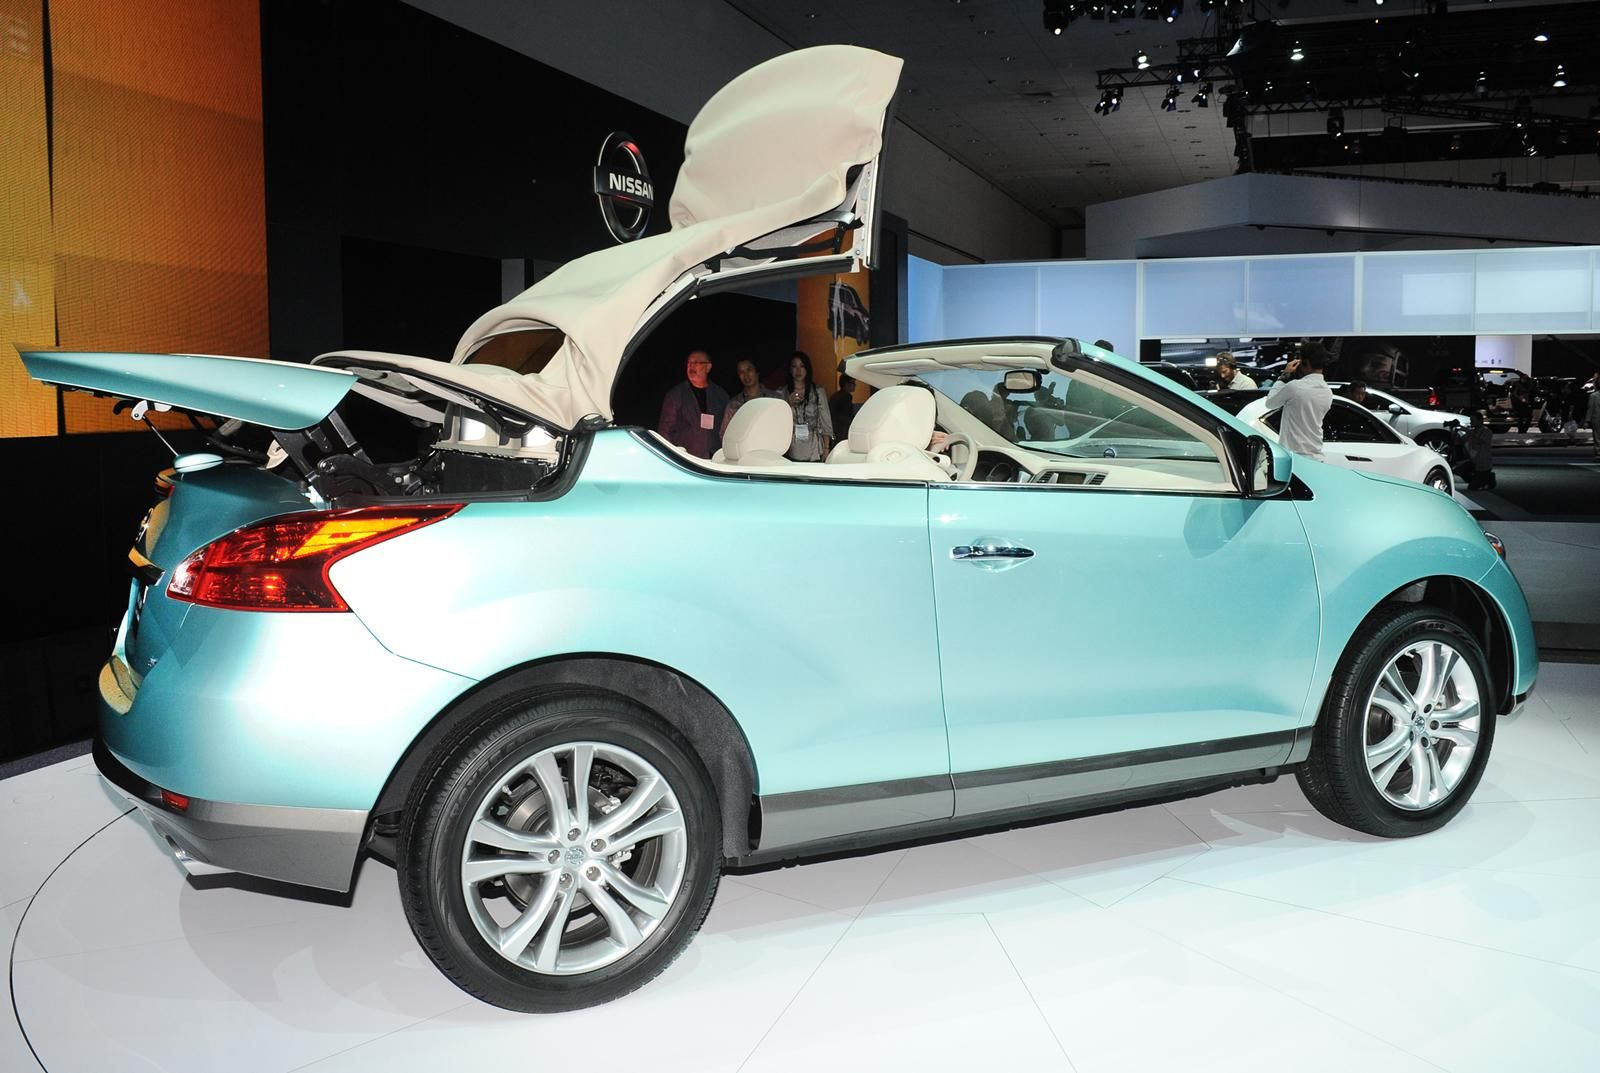 nissan murano convertible 2016 transport me pinterest nissan murano nissan and convertible. Black Bedroom Furniture Sets. Home Design Ideas